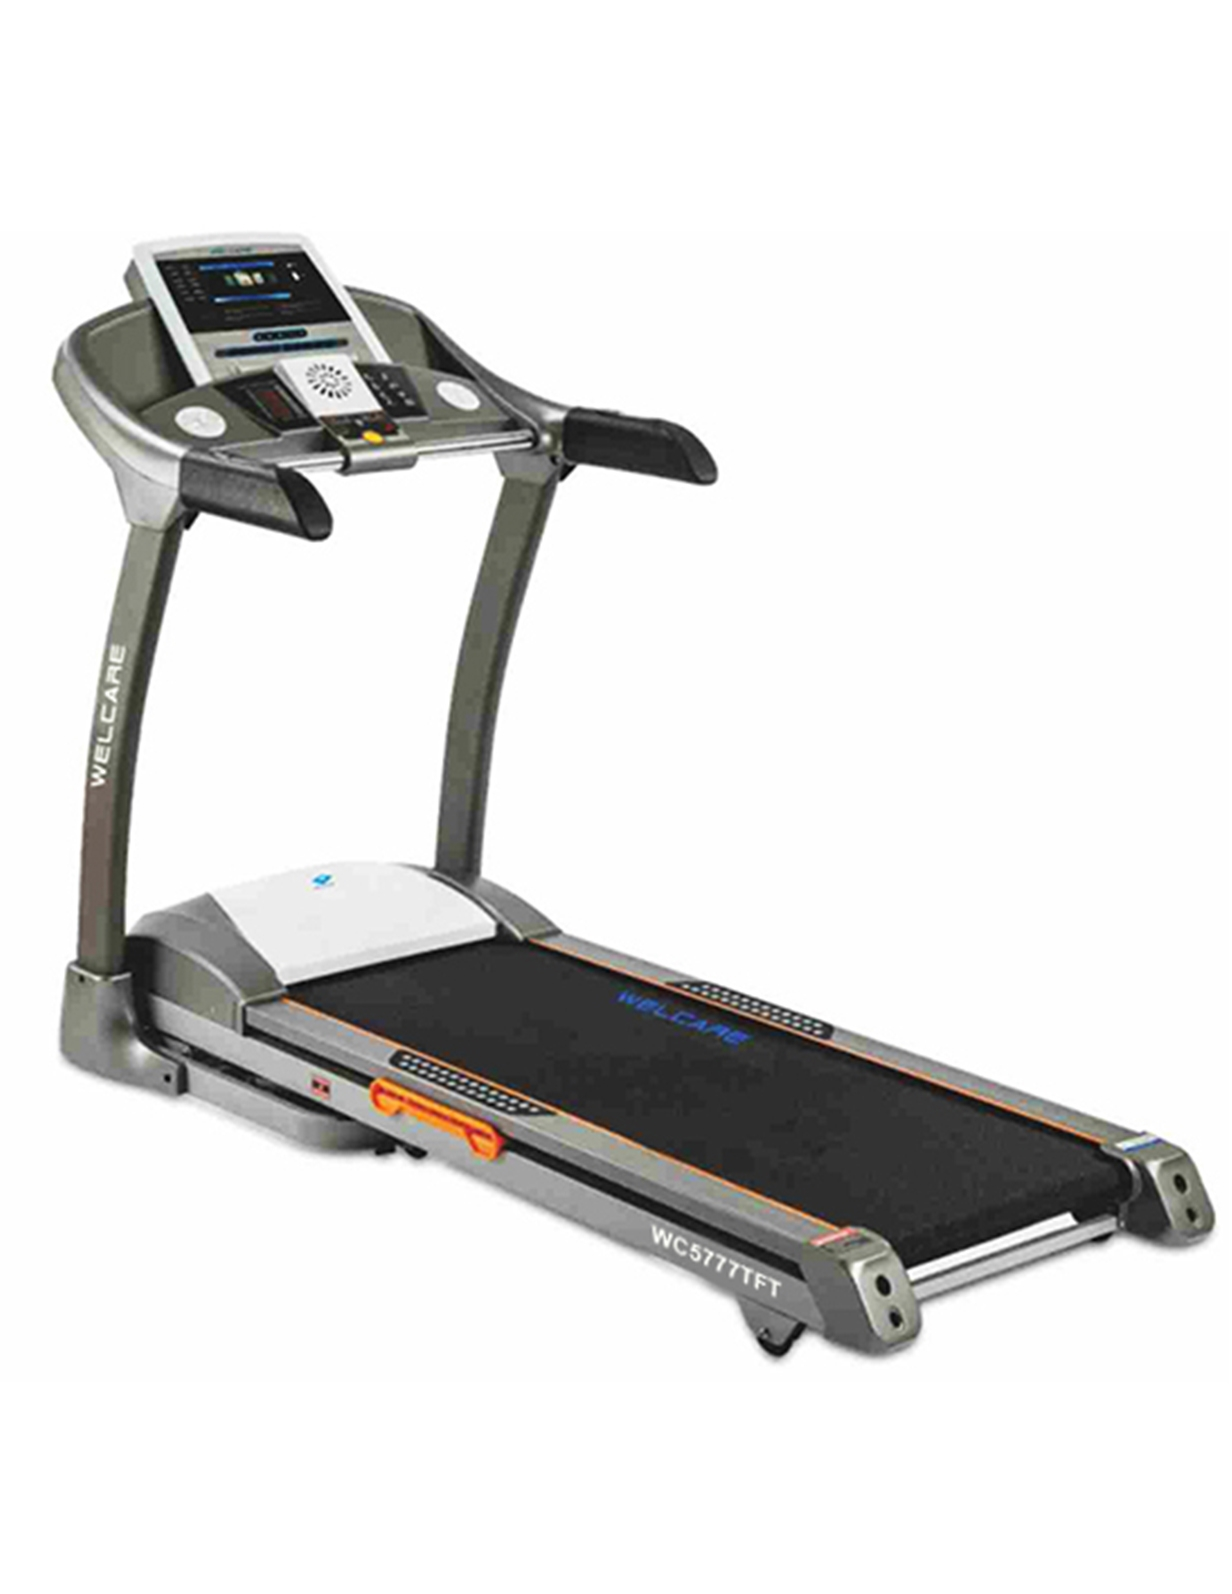 WC 5777 TFT DC MOTORIZED  TREADMILL